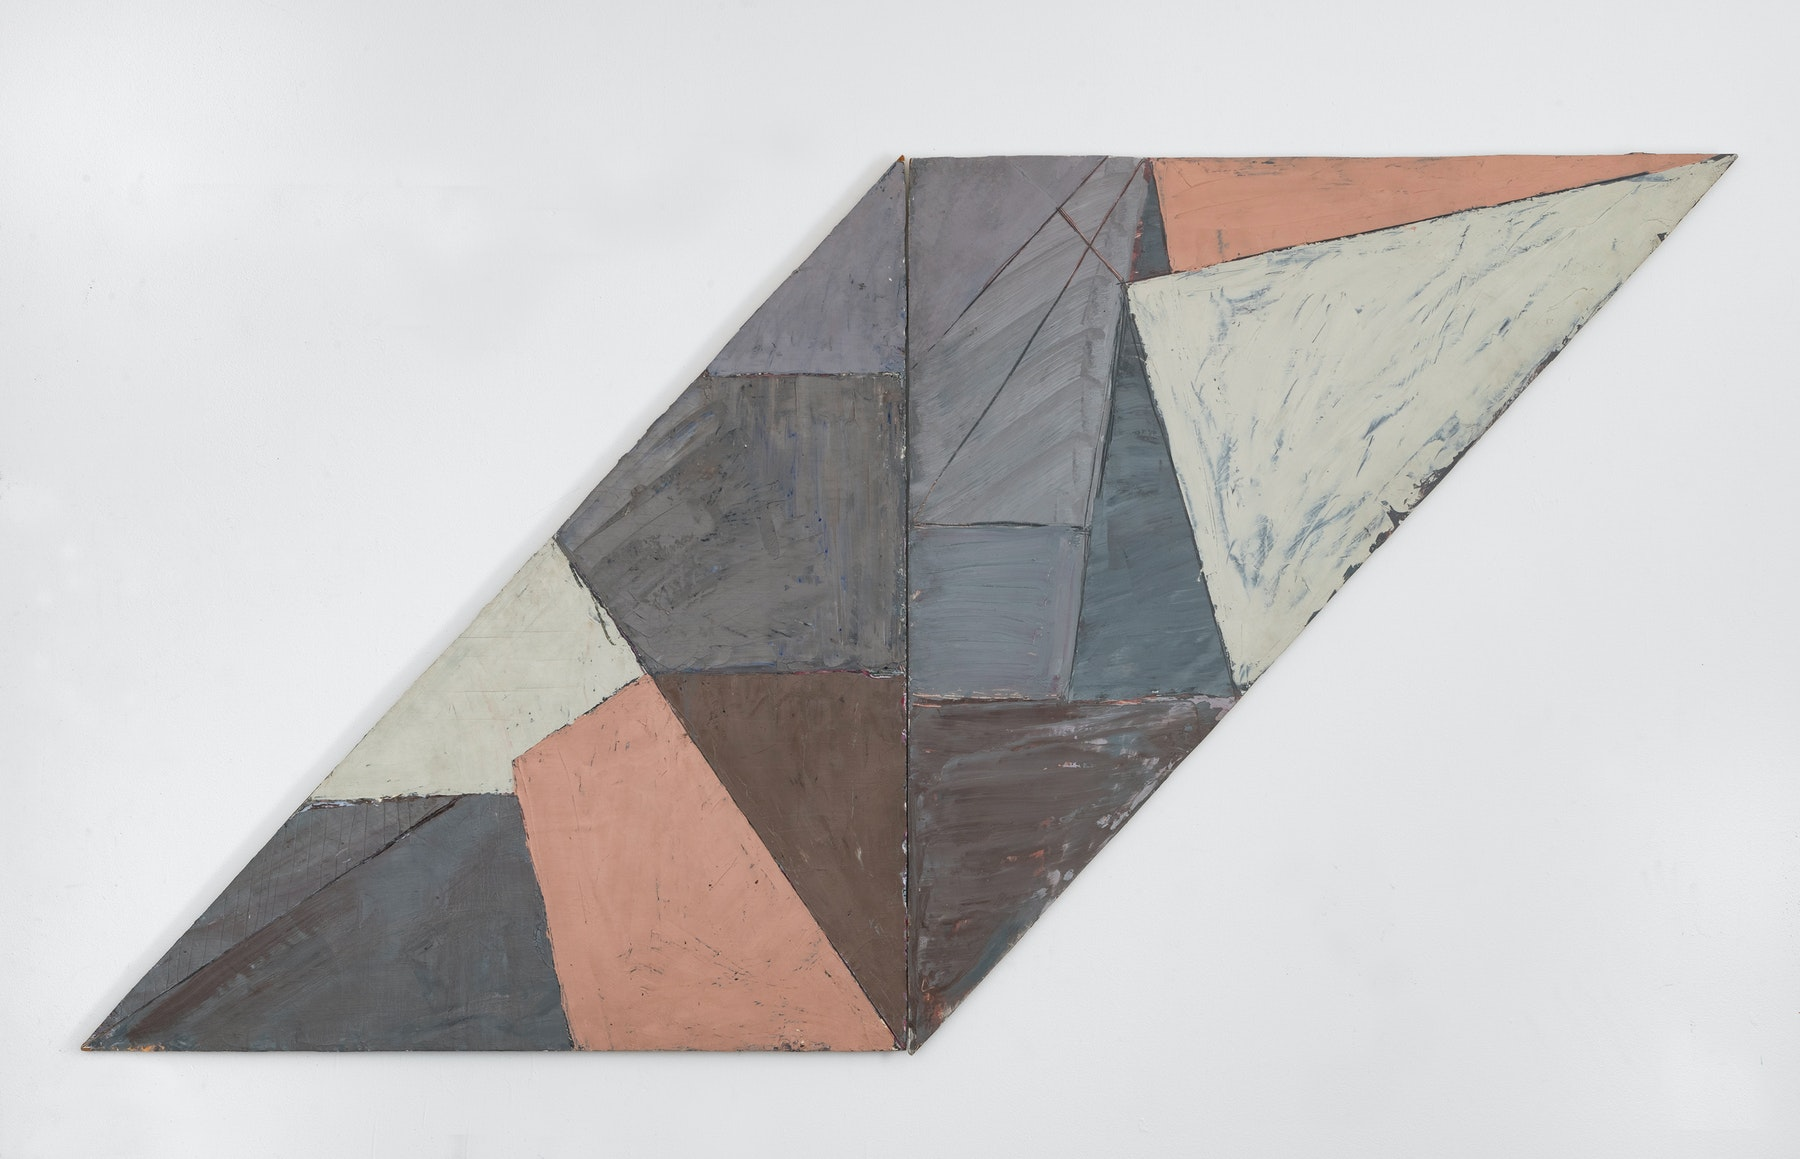 """Louise Fishman """"IRREGULAR DIPTYCH / PARALLELOGRAM,"""" 1975 Oil on wood diptych 43 ¹⁄₂"""" x 80 ¹⁄₂"""" x 1"""" [HxWxD] (110.49 x 204.47 x 2.54 cm) Inventory #FIS167 Courtesy of the artist and Vielmetter Los Angeles Photo credit: Adam Reich"""